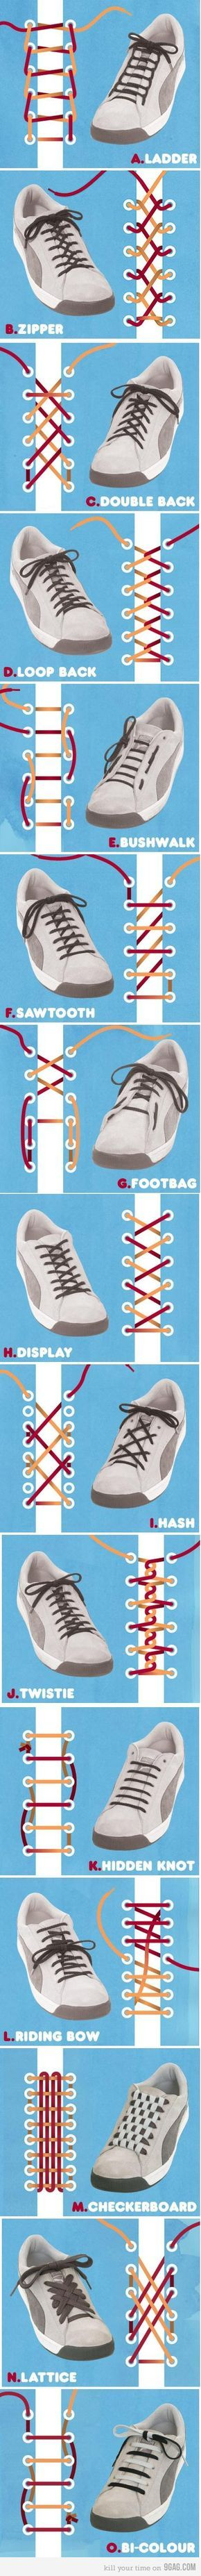 23 Best Trenzados Originales Para El Calzado Images On Pinterest Little Miss Janis Sepatu Muffin Deep Blue 15 Cool Ways To Tie Shoelaces